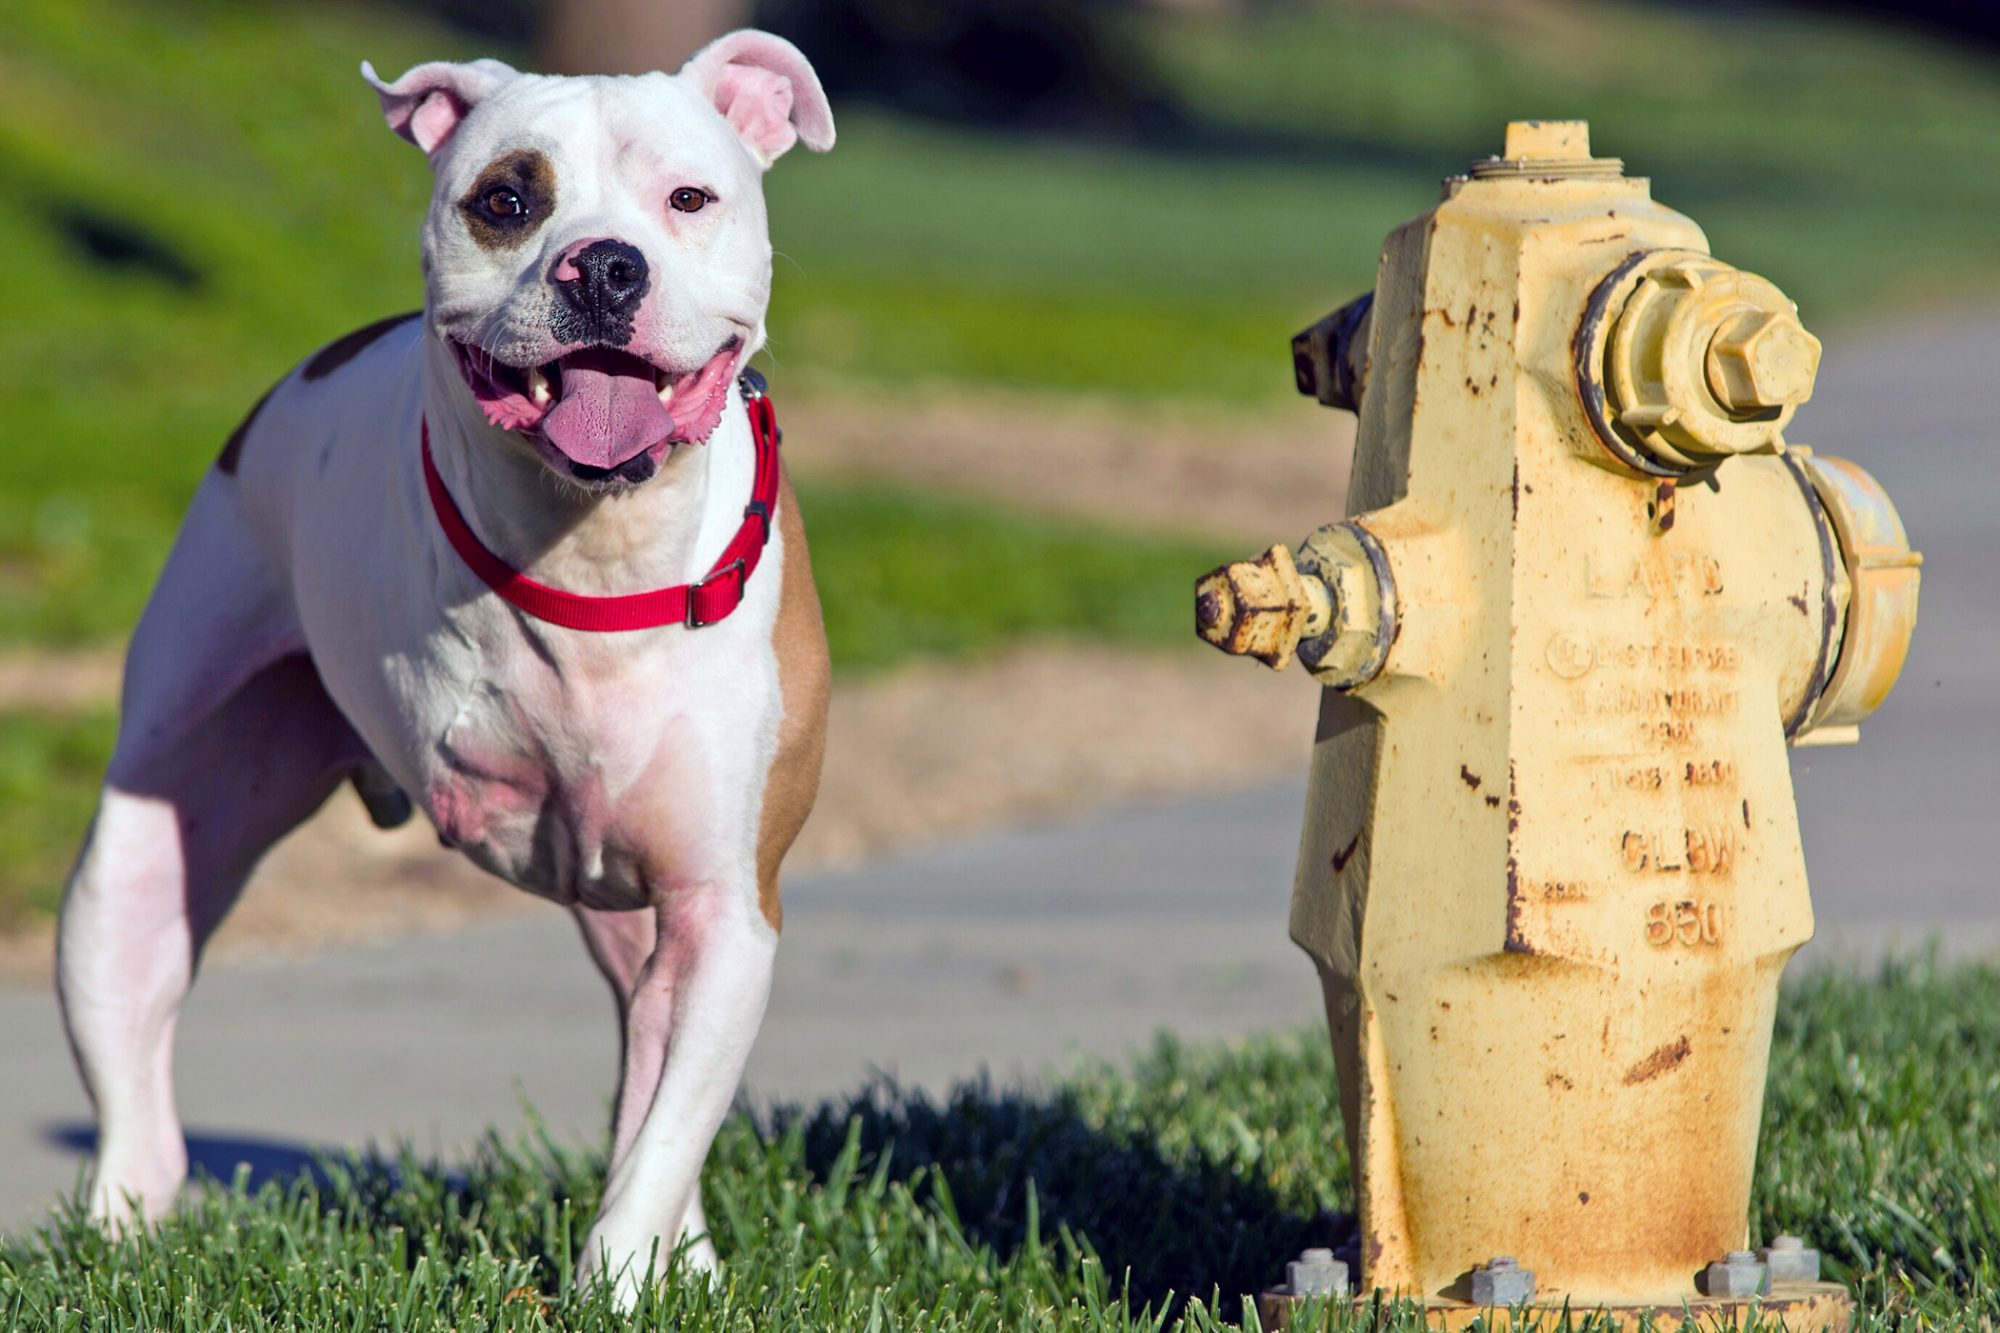 three-legged dog next to yellow fire hydrant